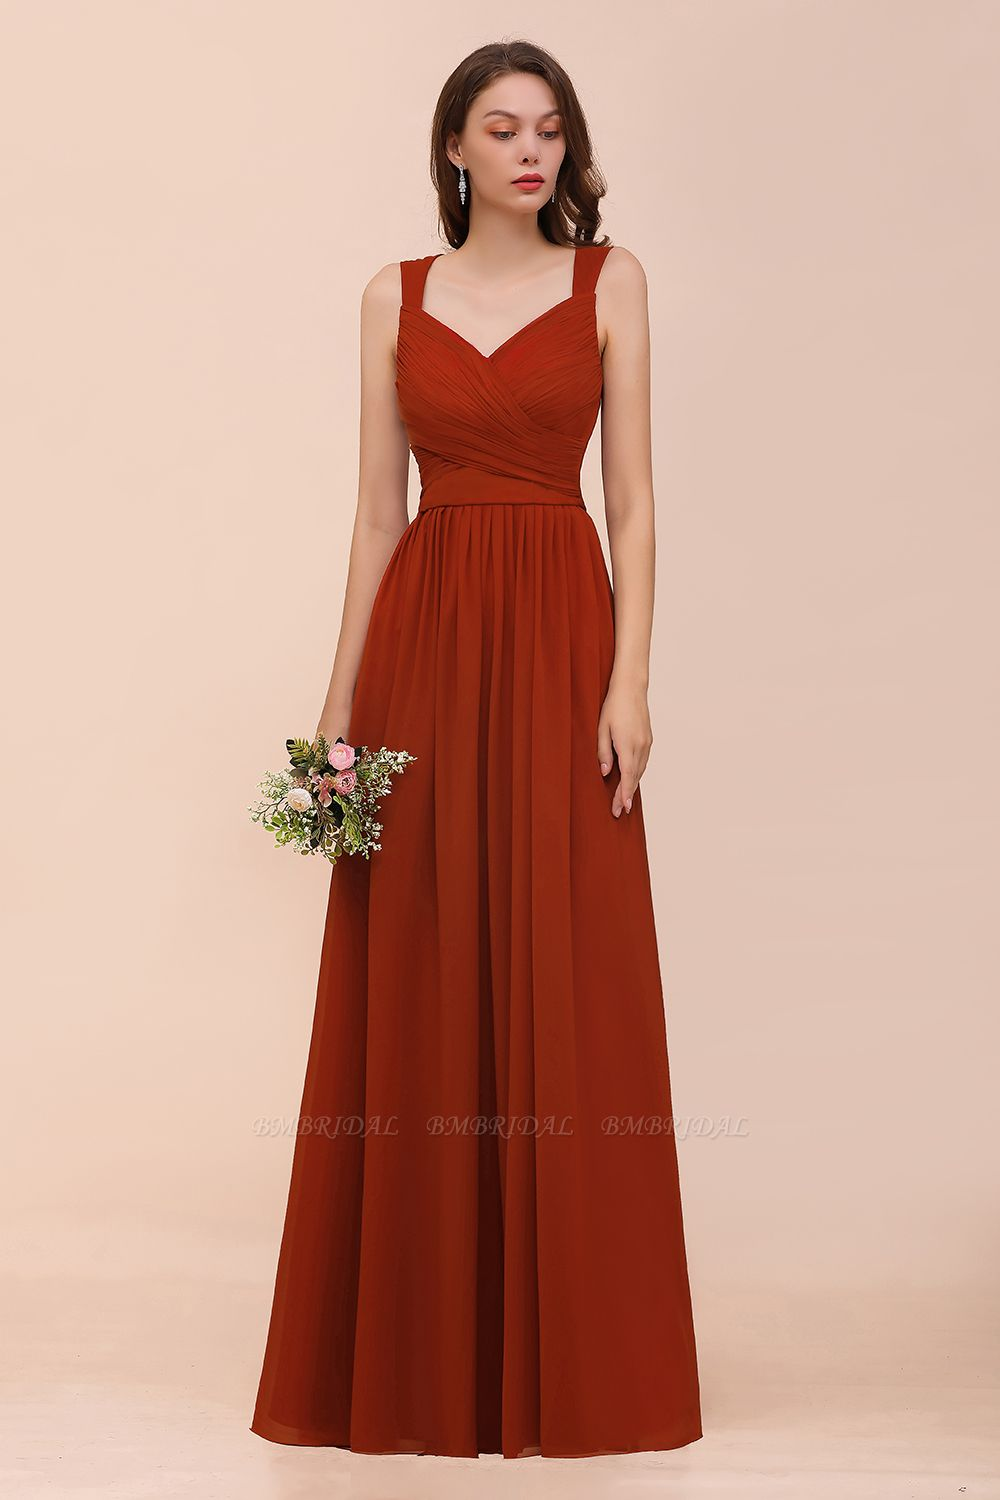 BMbridal New Arrival Gorgeous Straps Ruffle Rust Long Bridesmaid Dress